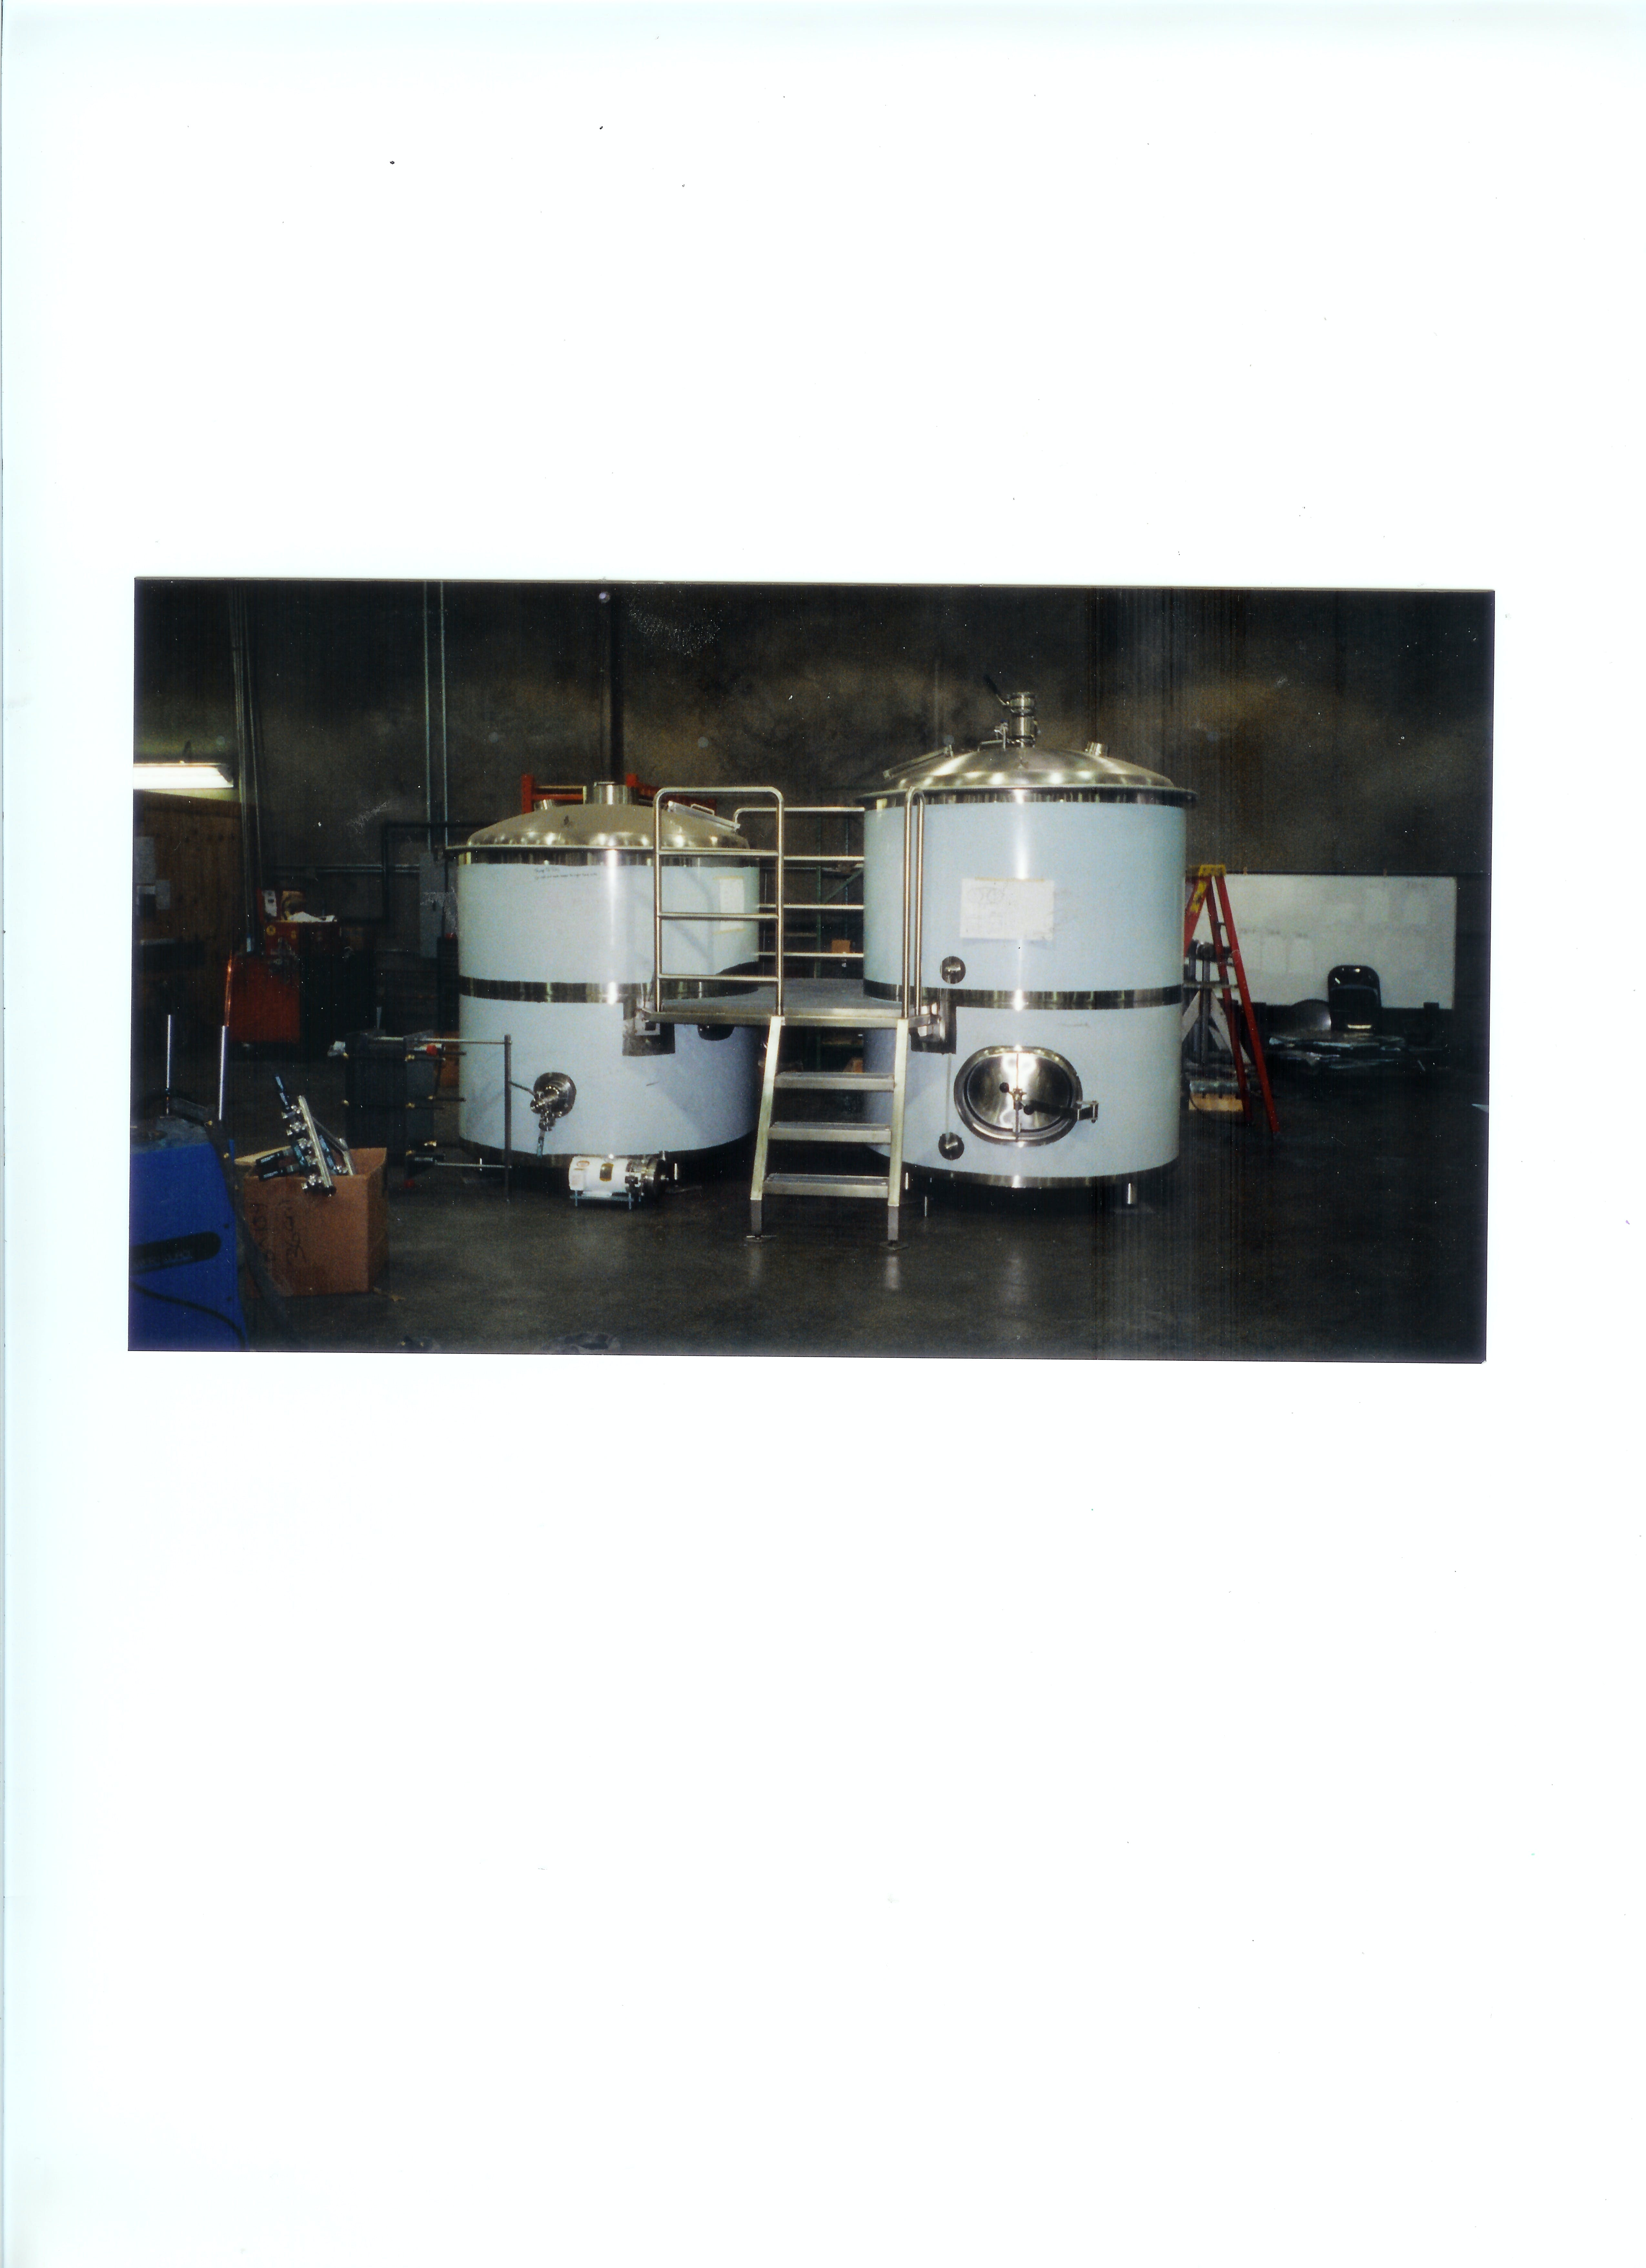 30 bbl - sold by Wine Country Stainless Steel Tank Co